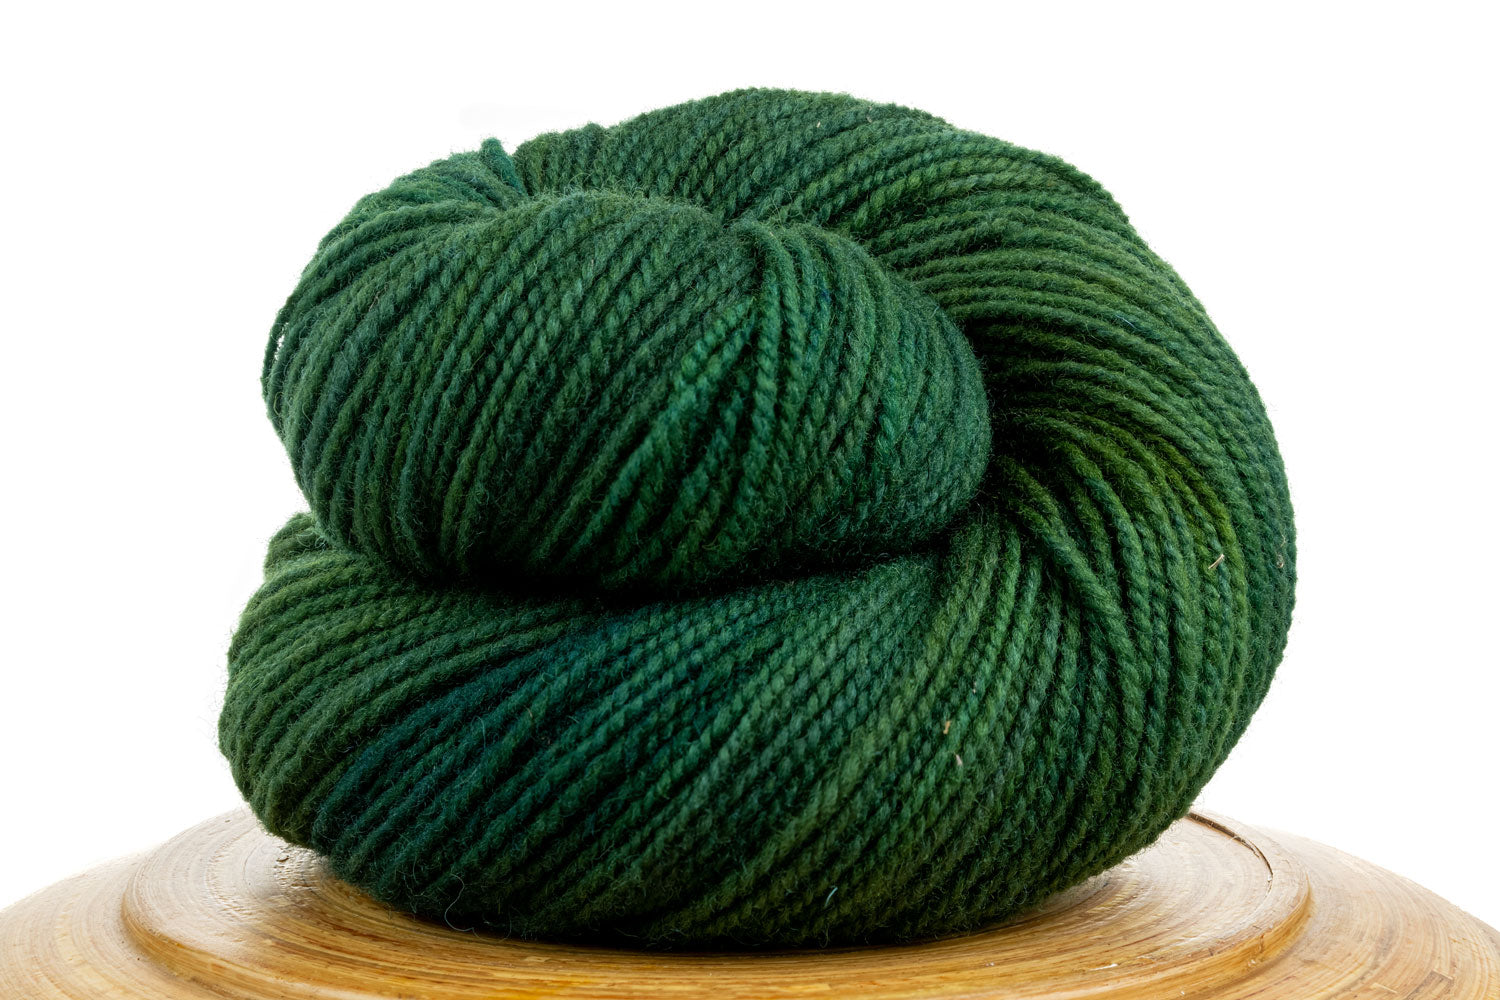 Winfield Canadian hand-dyed yarn in Hinterlands, a dark green